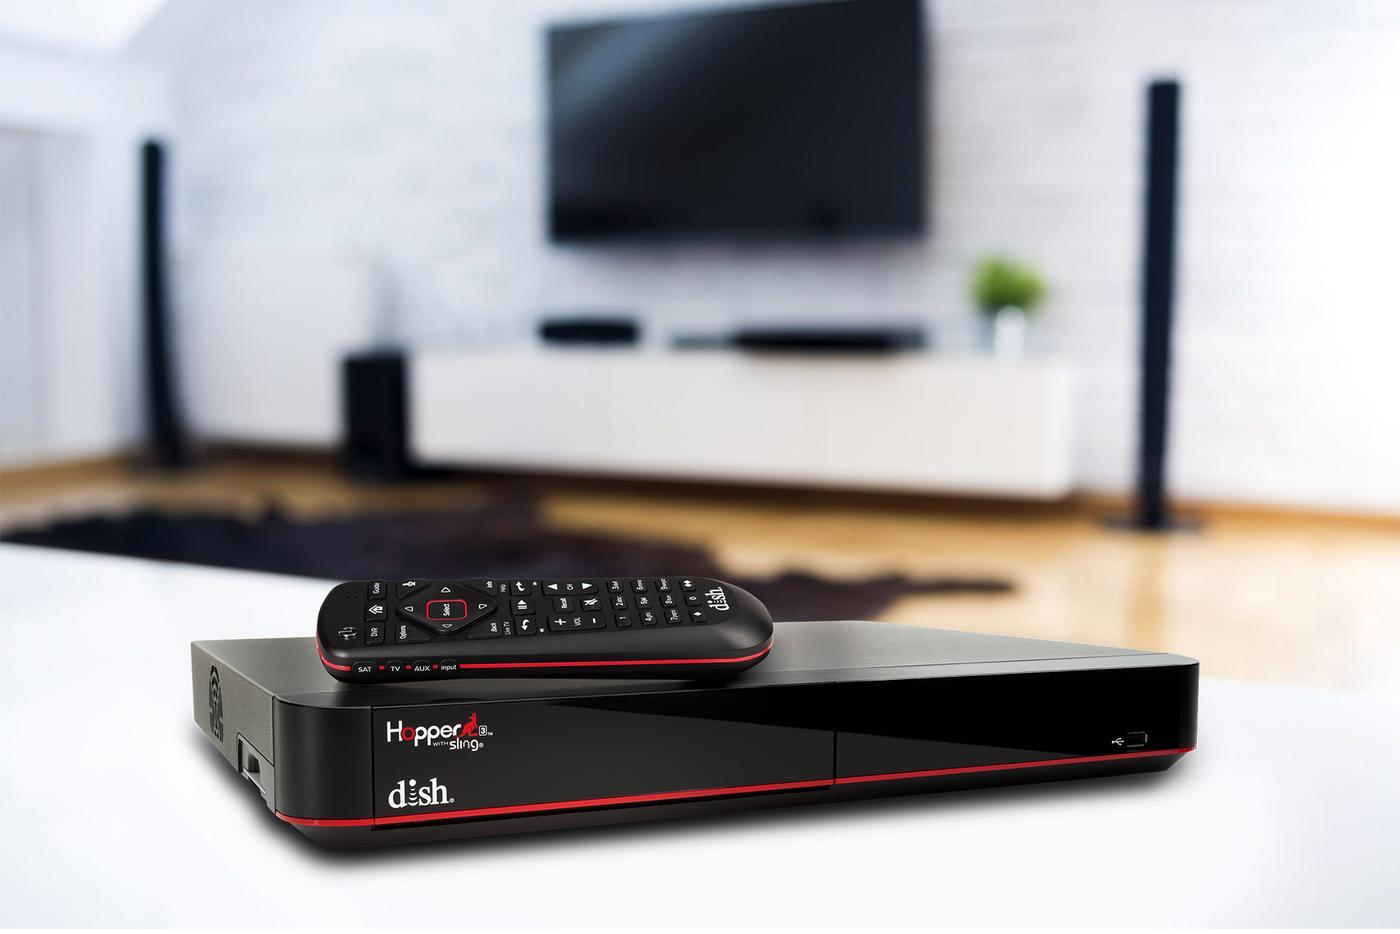 The Hopper - DVR with 4K ultra HD resolution  - Slayton, Minnesota - Tom's Satellite Service Plus - DISH Authorized Retailer